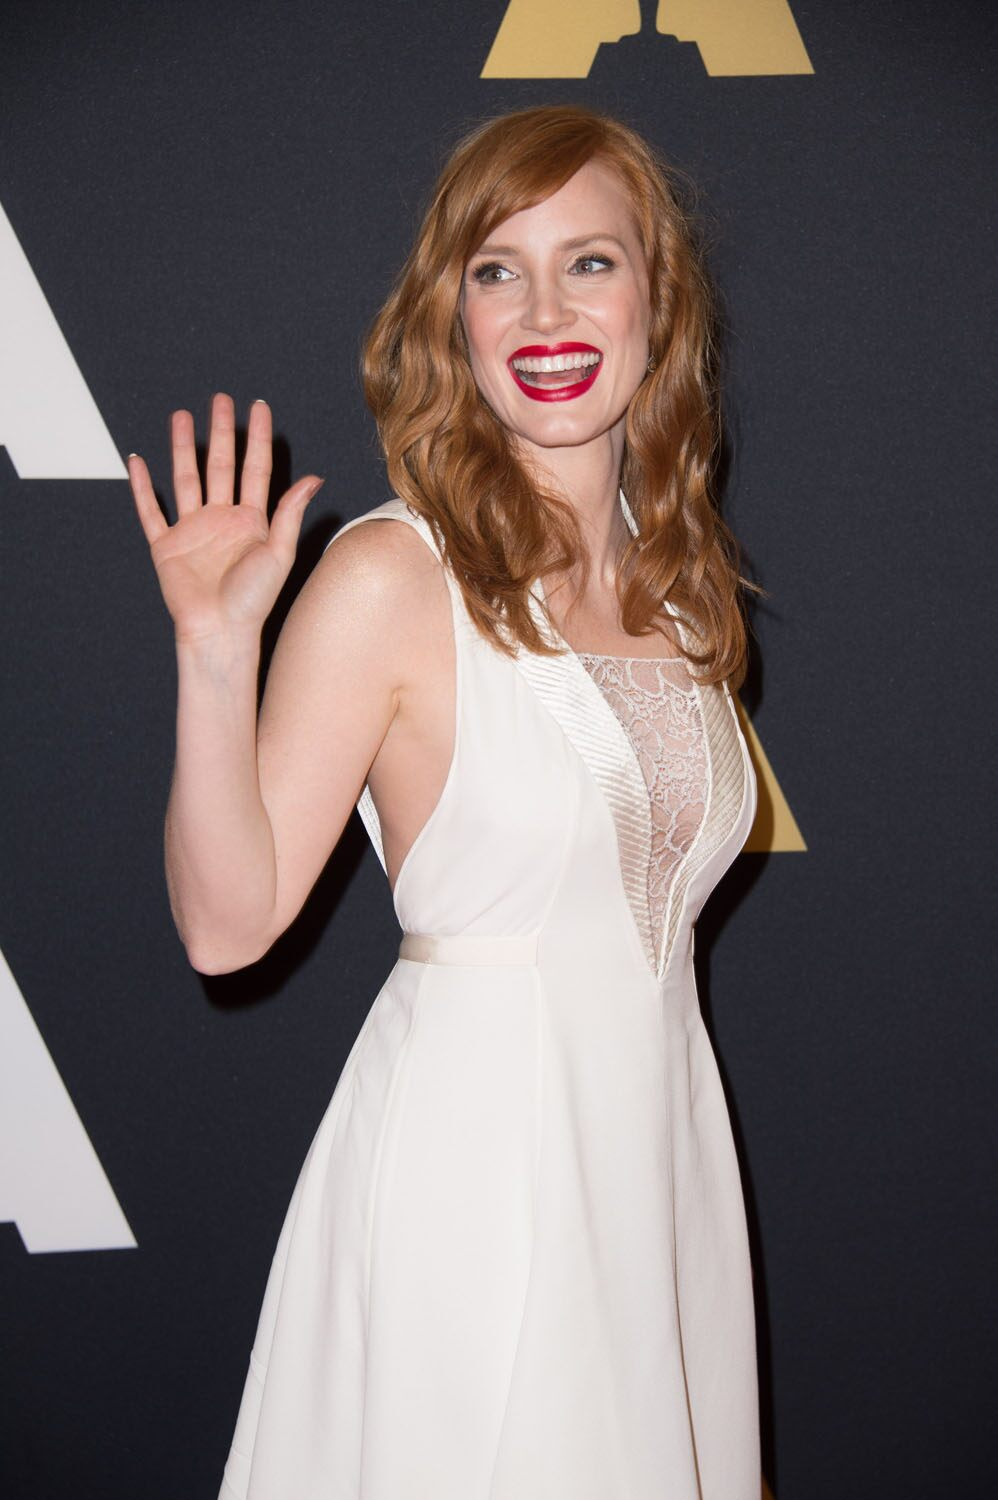 Jessica Chastain at the 6th Annual Governors Awards